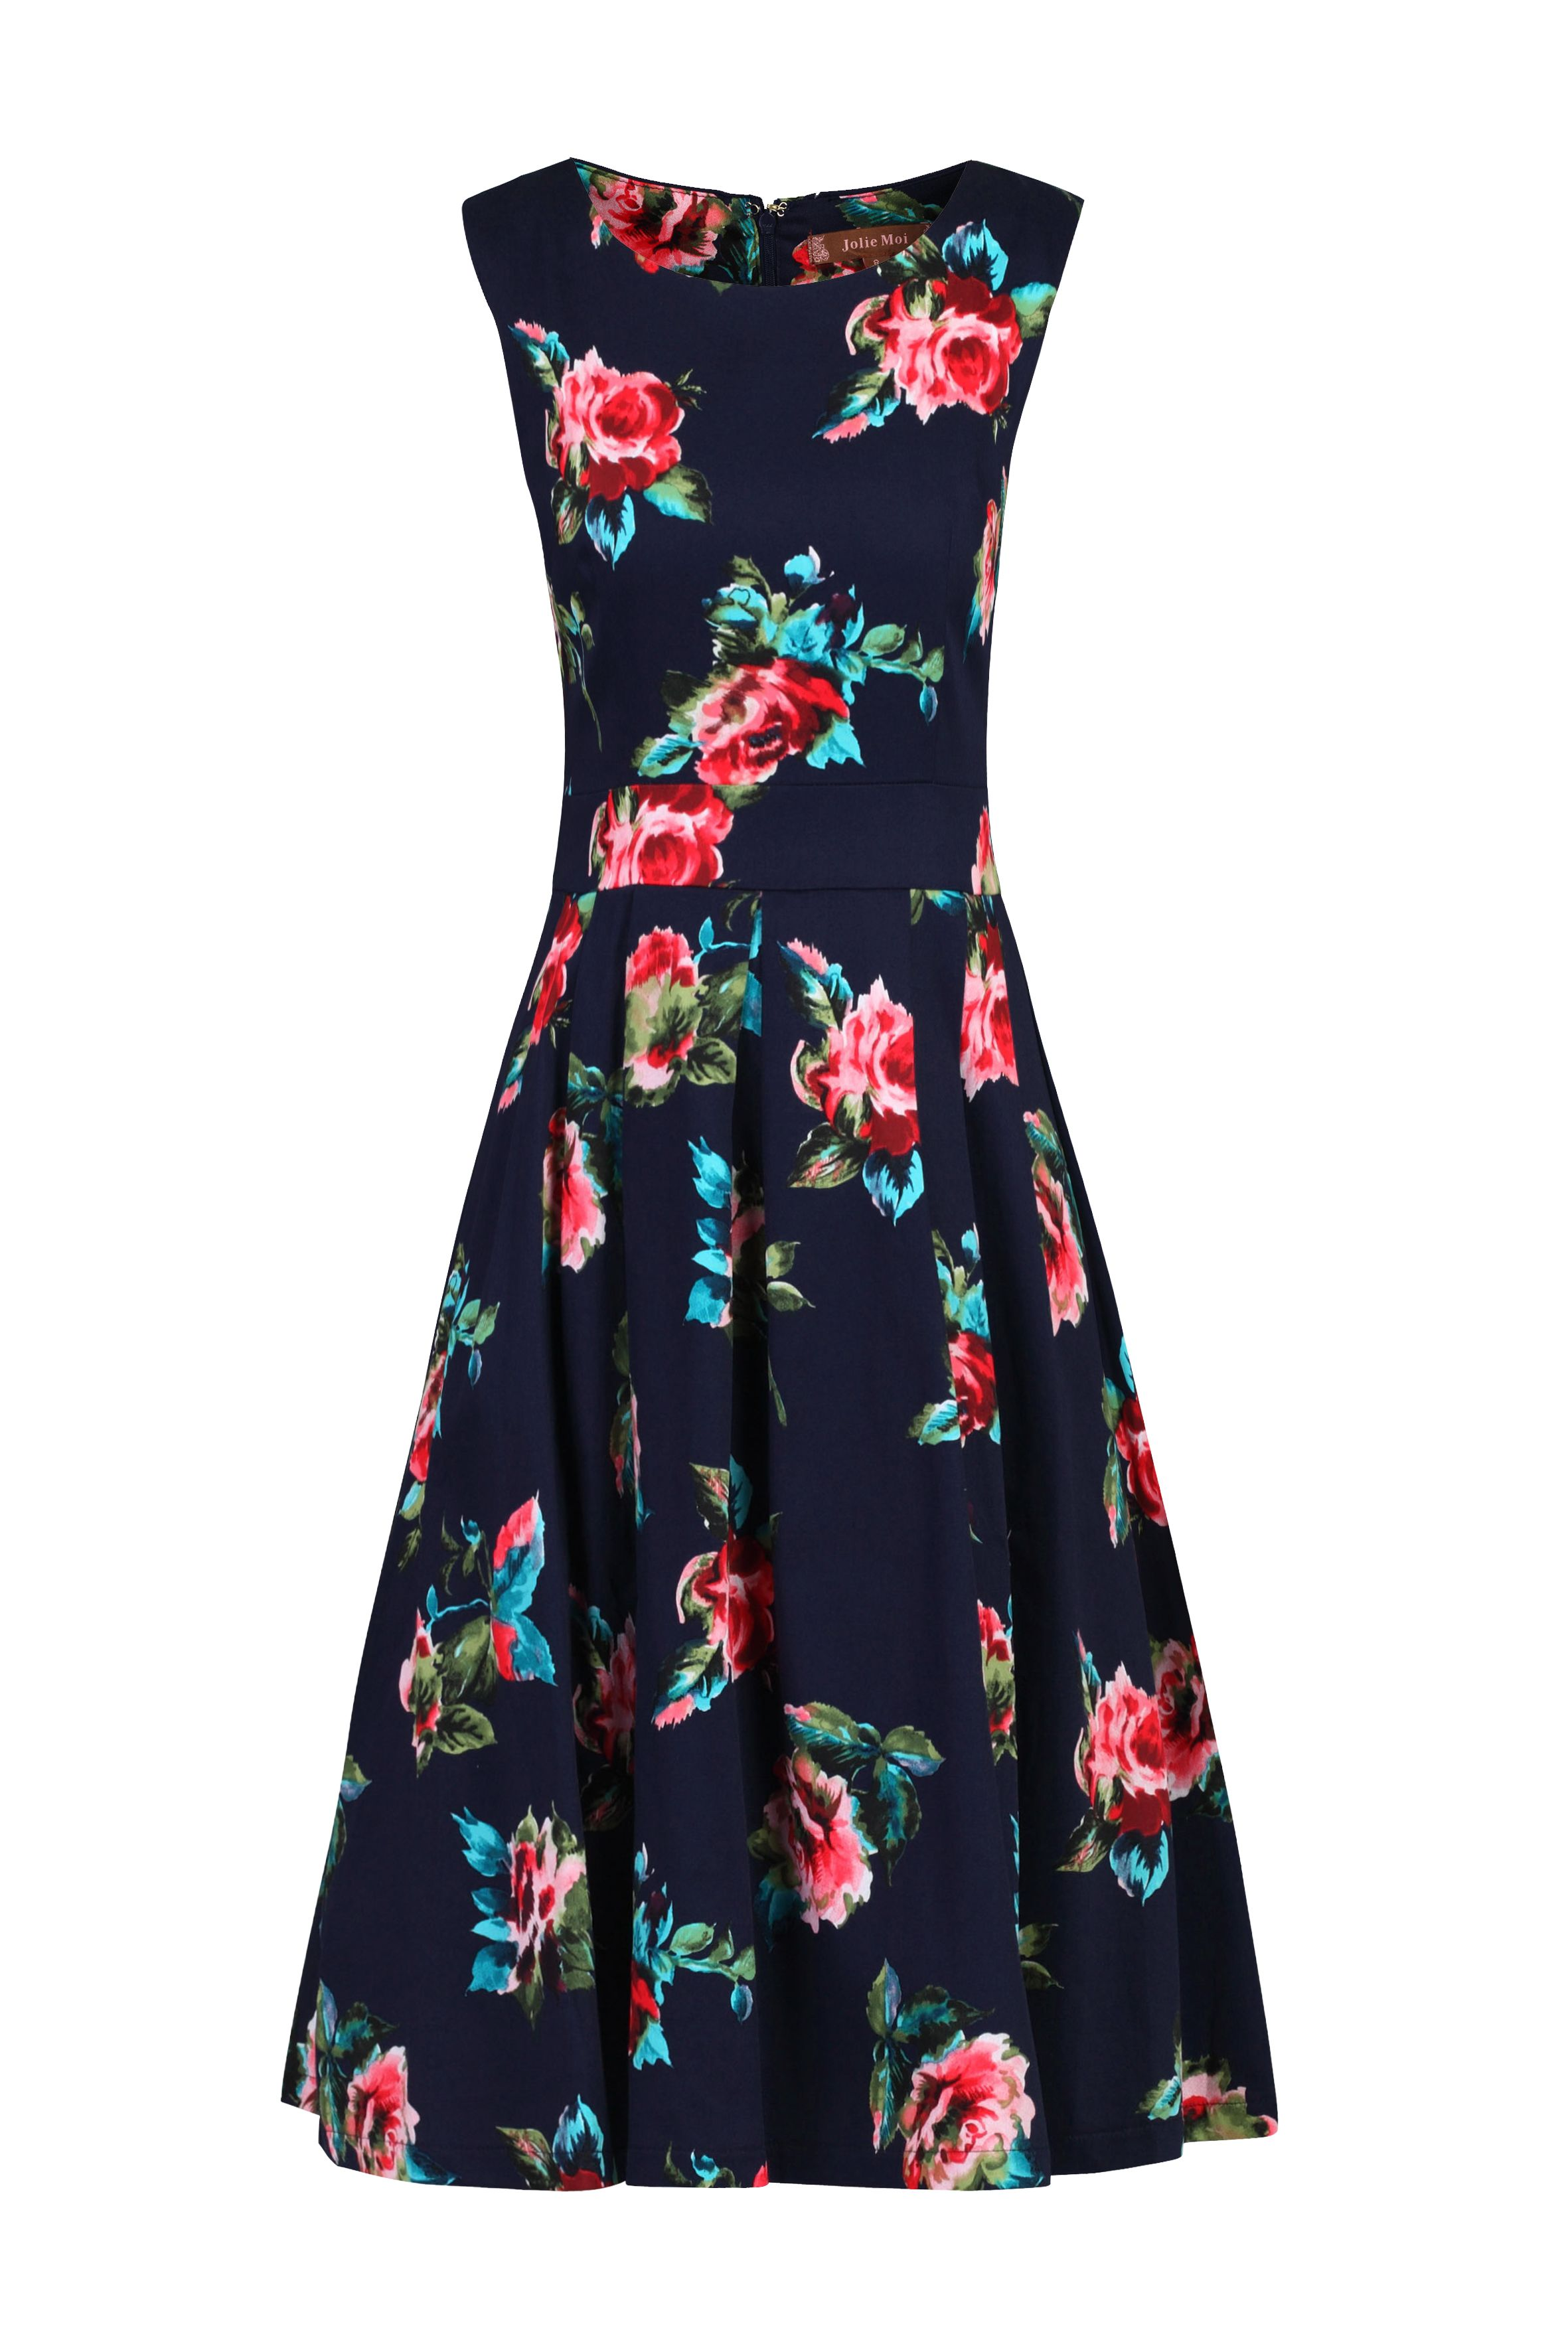 Jolie Moi Floral Print Pleated Swing Dress, Multi-Coloured